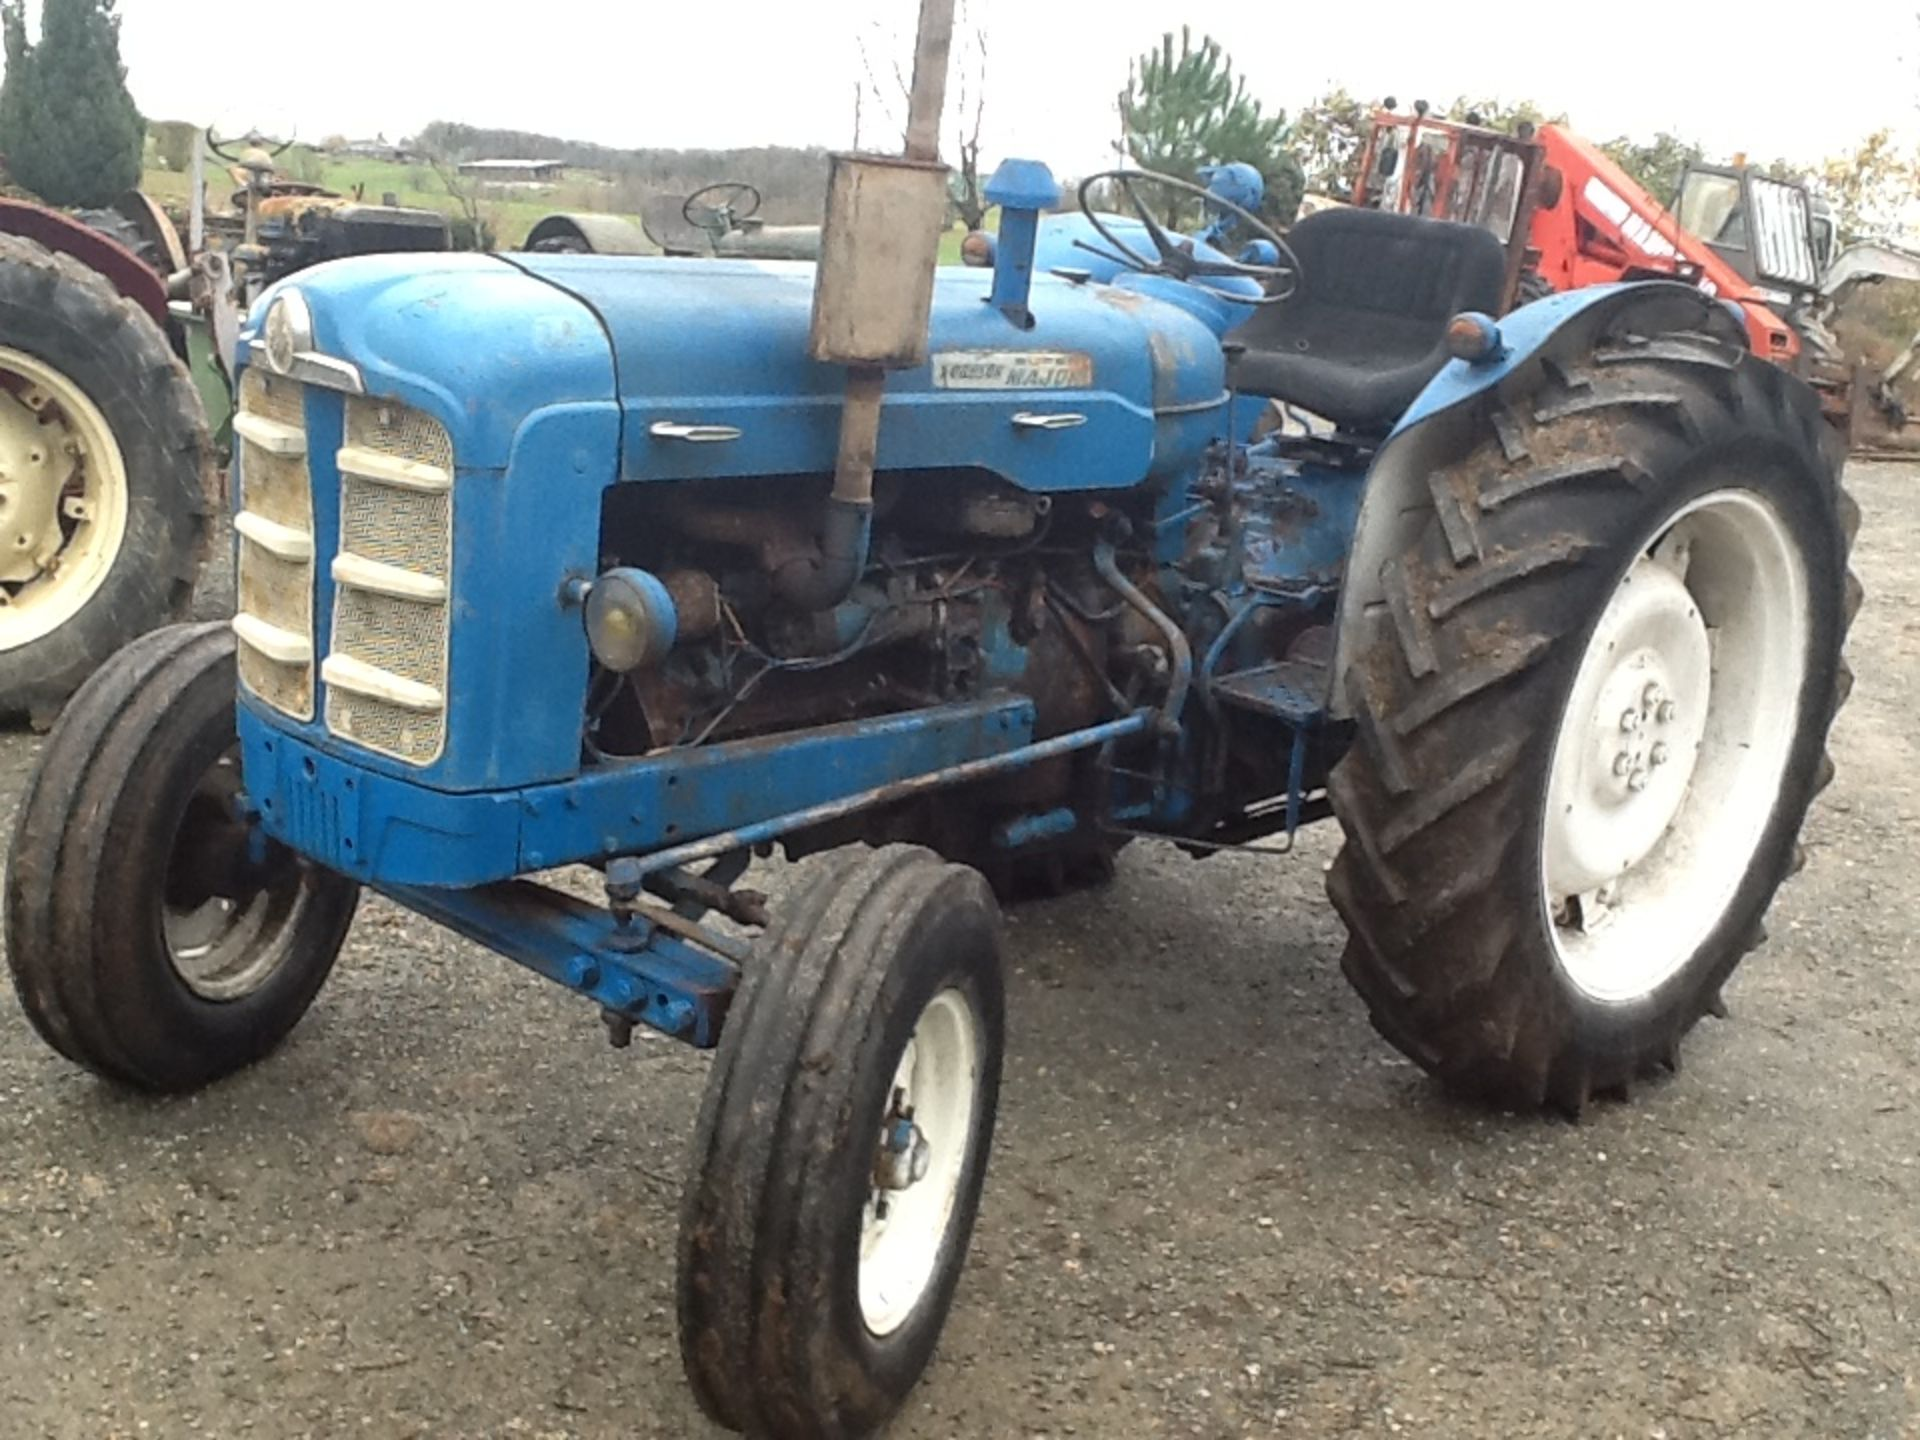 1964 FORDSON Super Major 4cylinder diesel TRACTOR Serial No. 08D954183 This New Performance is